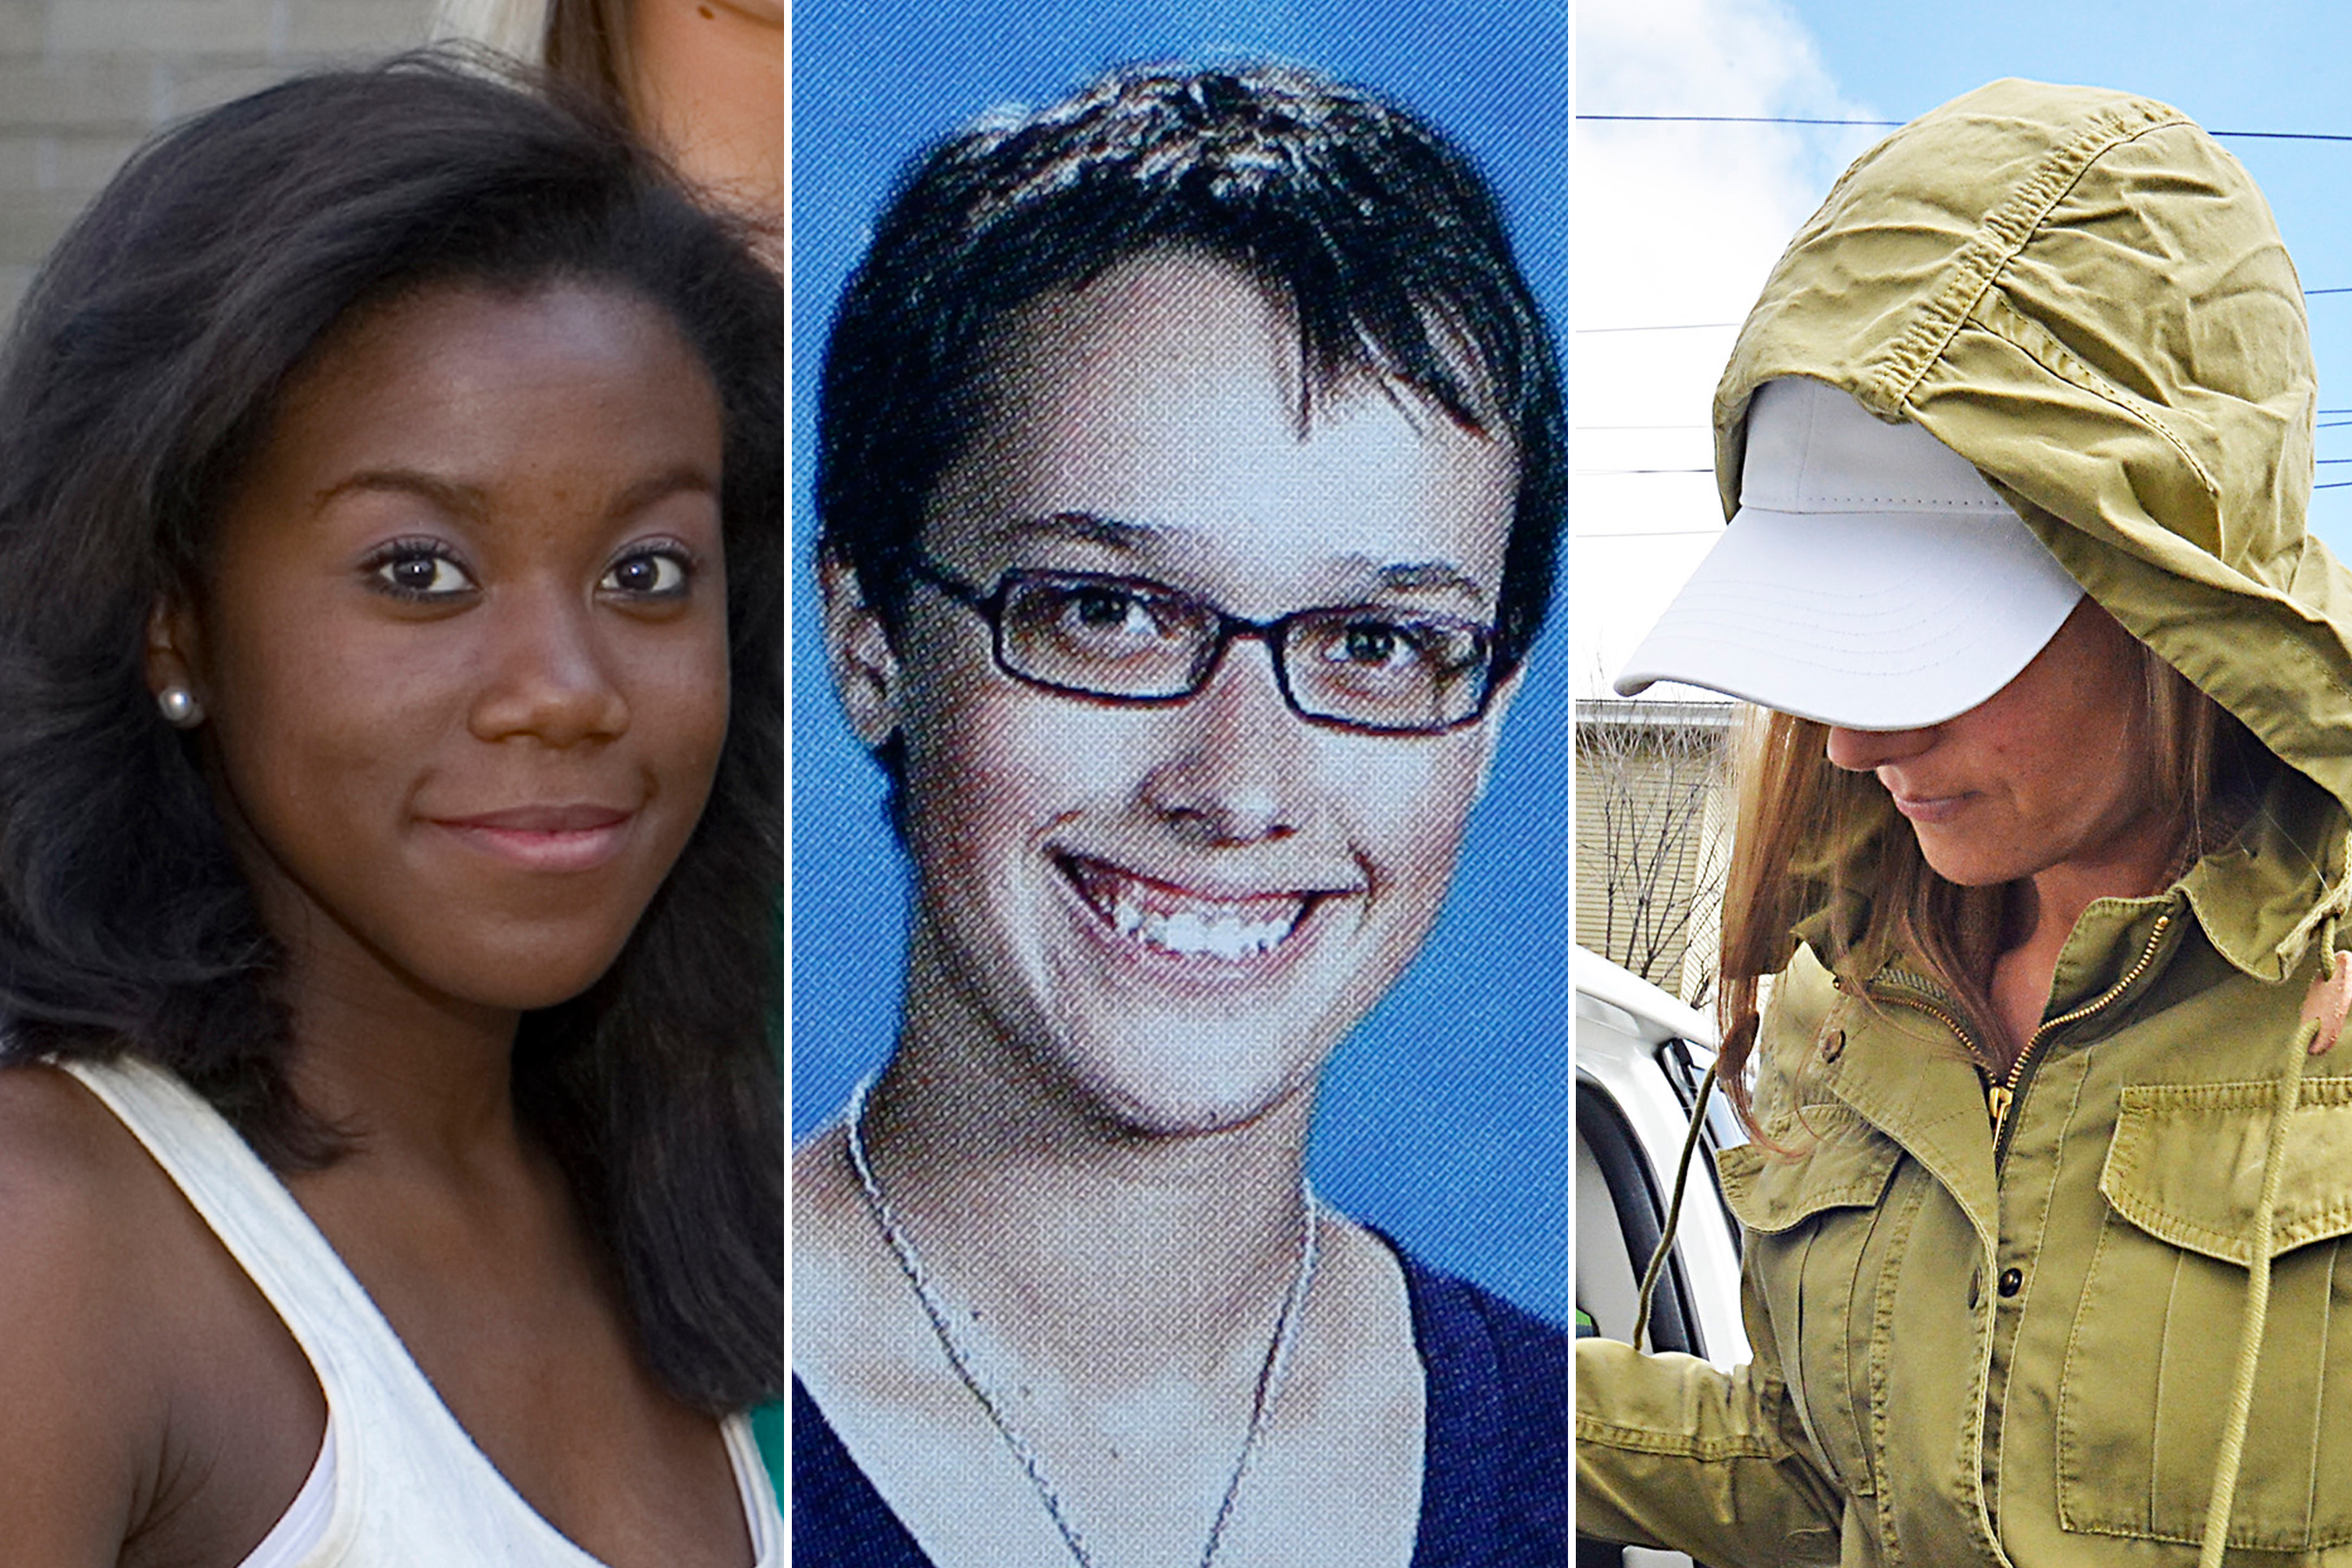 Meet the American women who are flocking to join ISIS